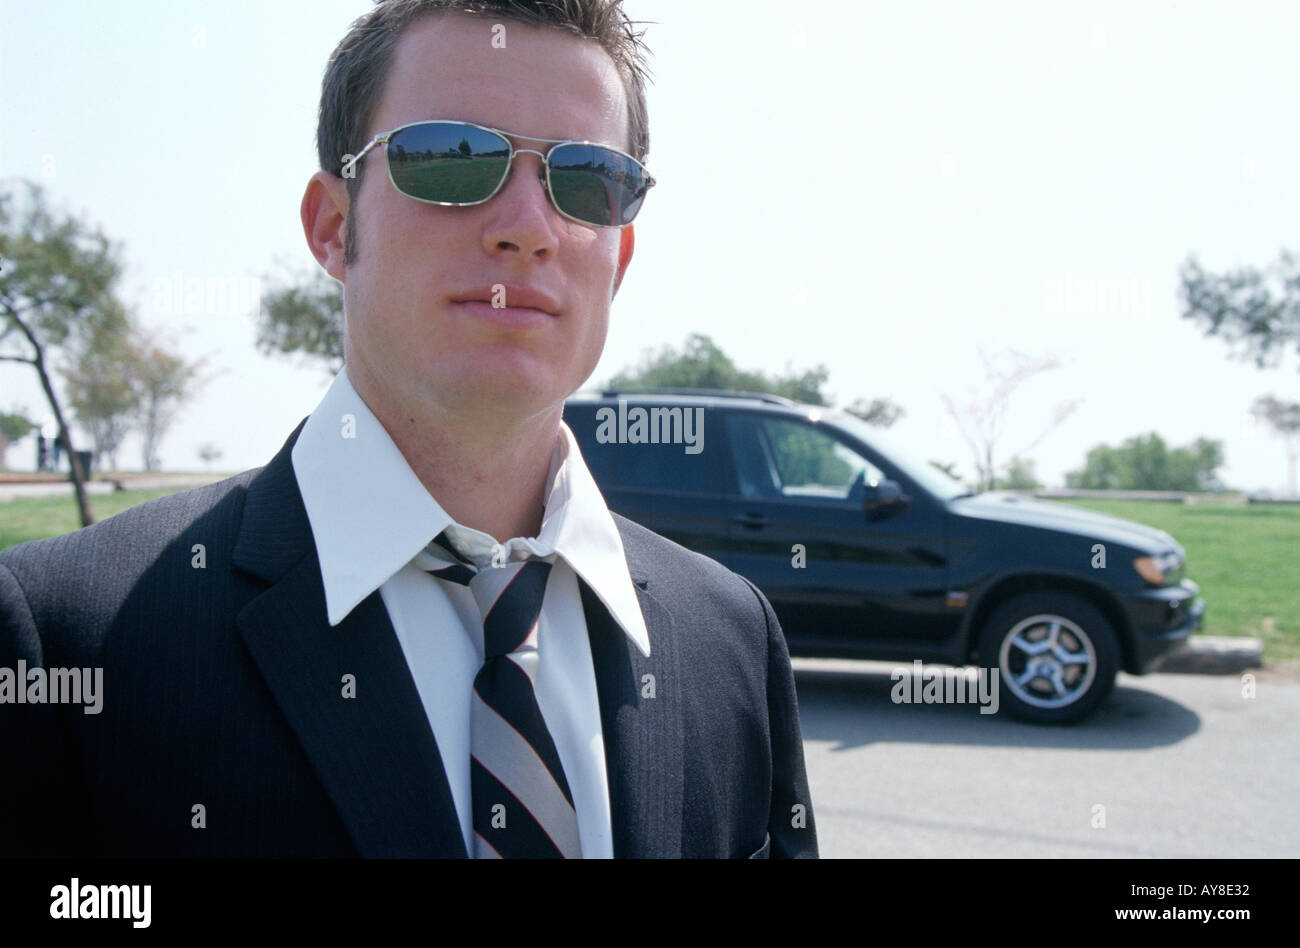 Young Professional With Coat And Tie And BMW Car